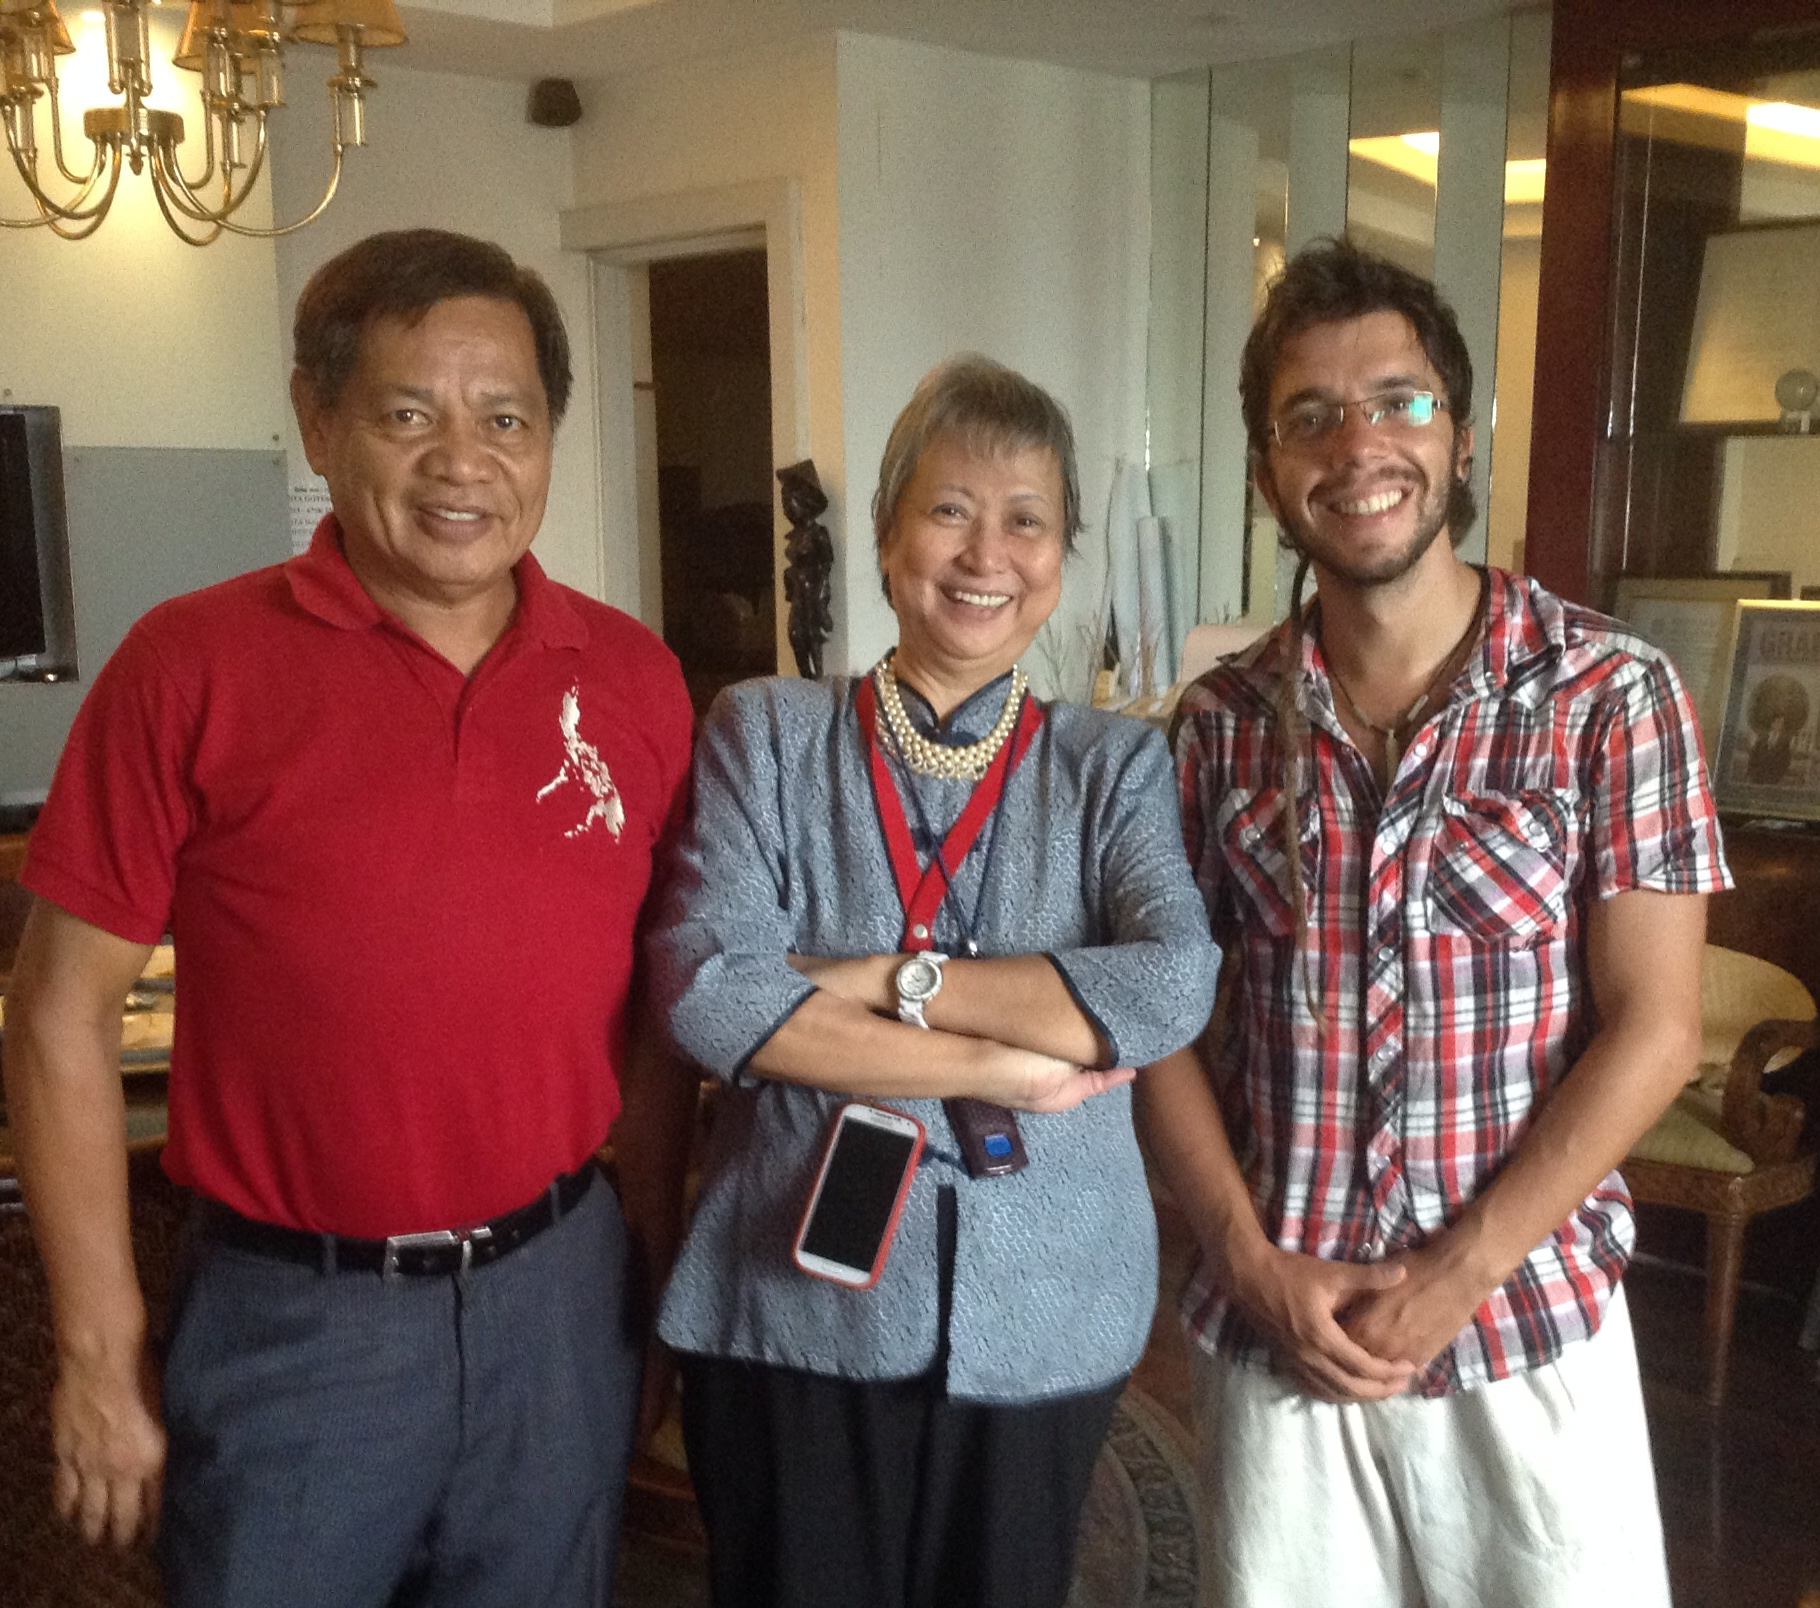 Philippine ITI earthsavers UNESCO DREAM Center, Cecile Guidote Alvarez, Javier Collado Ruano, Global Education Magazine